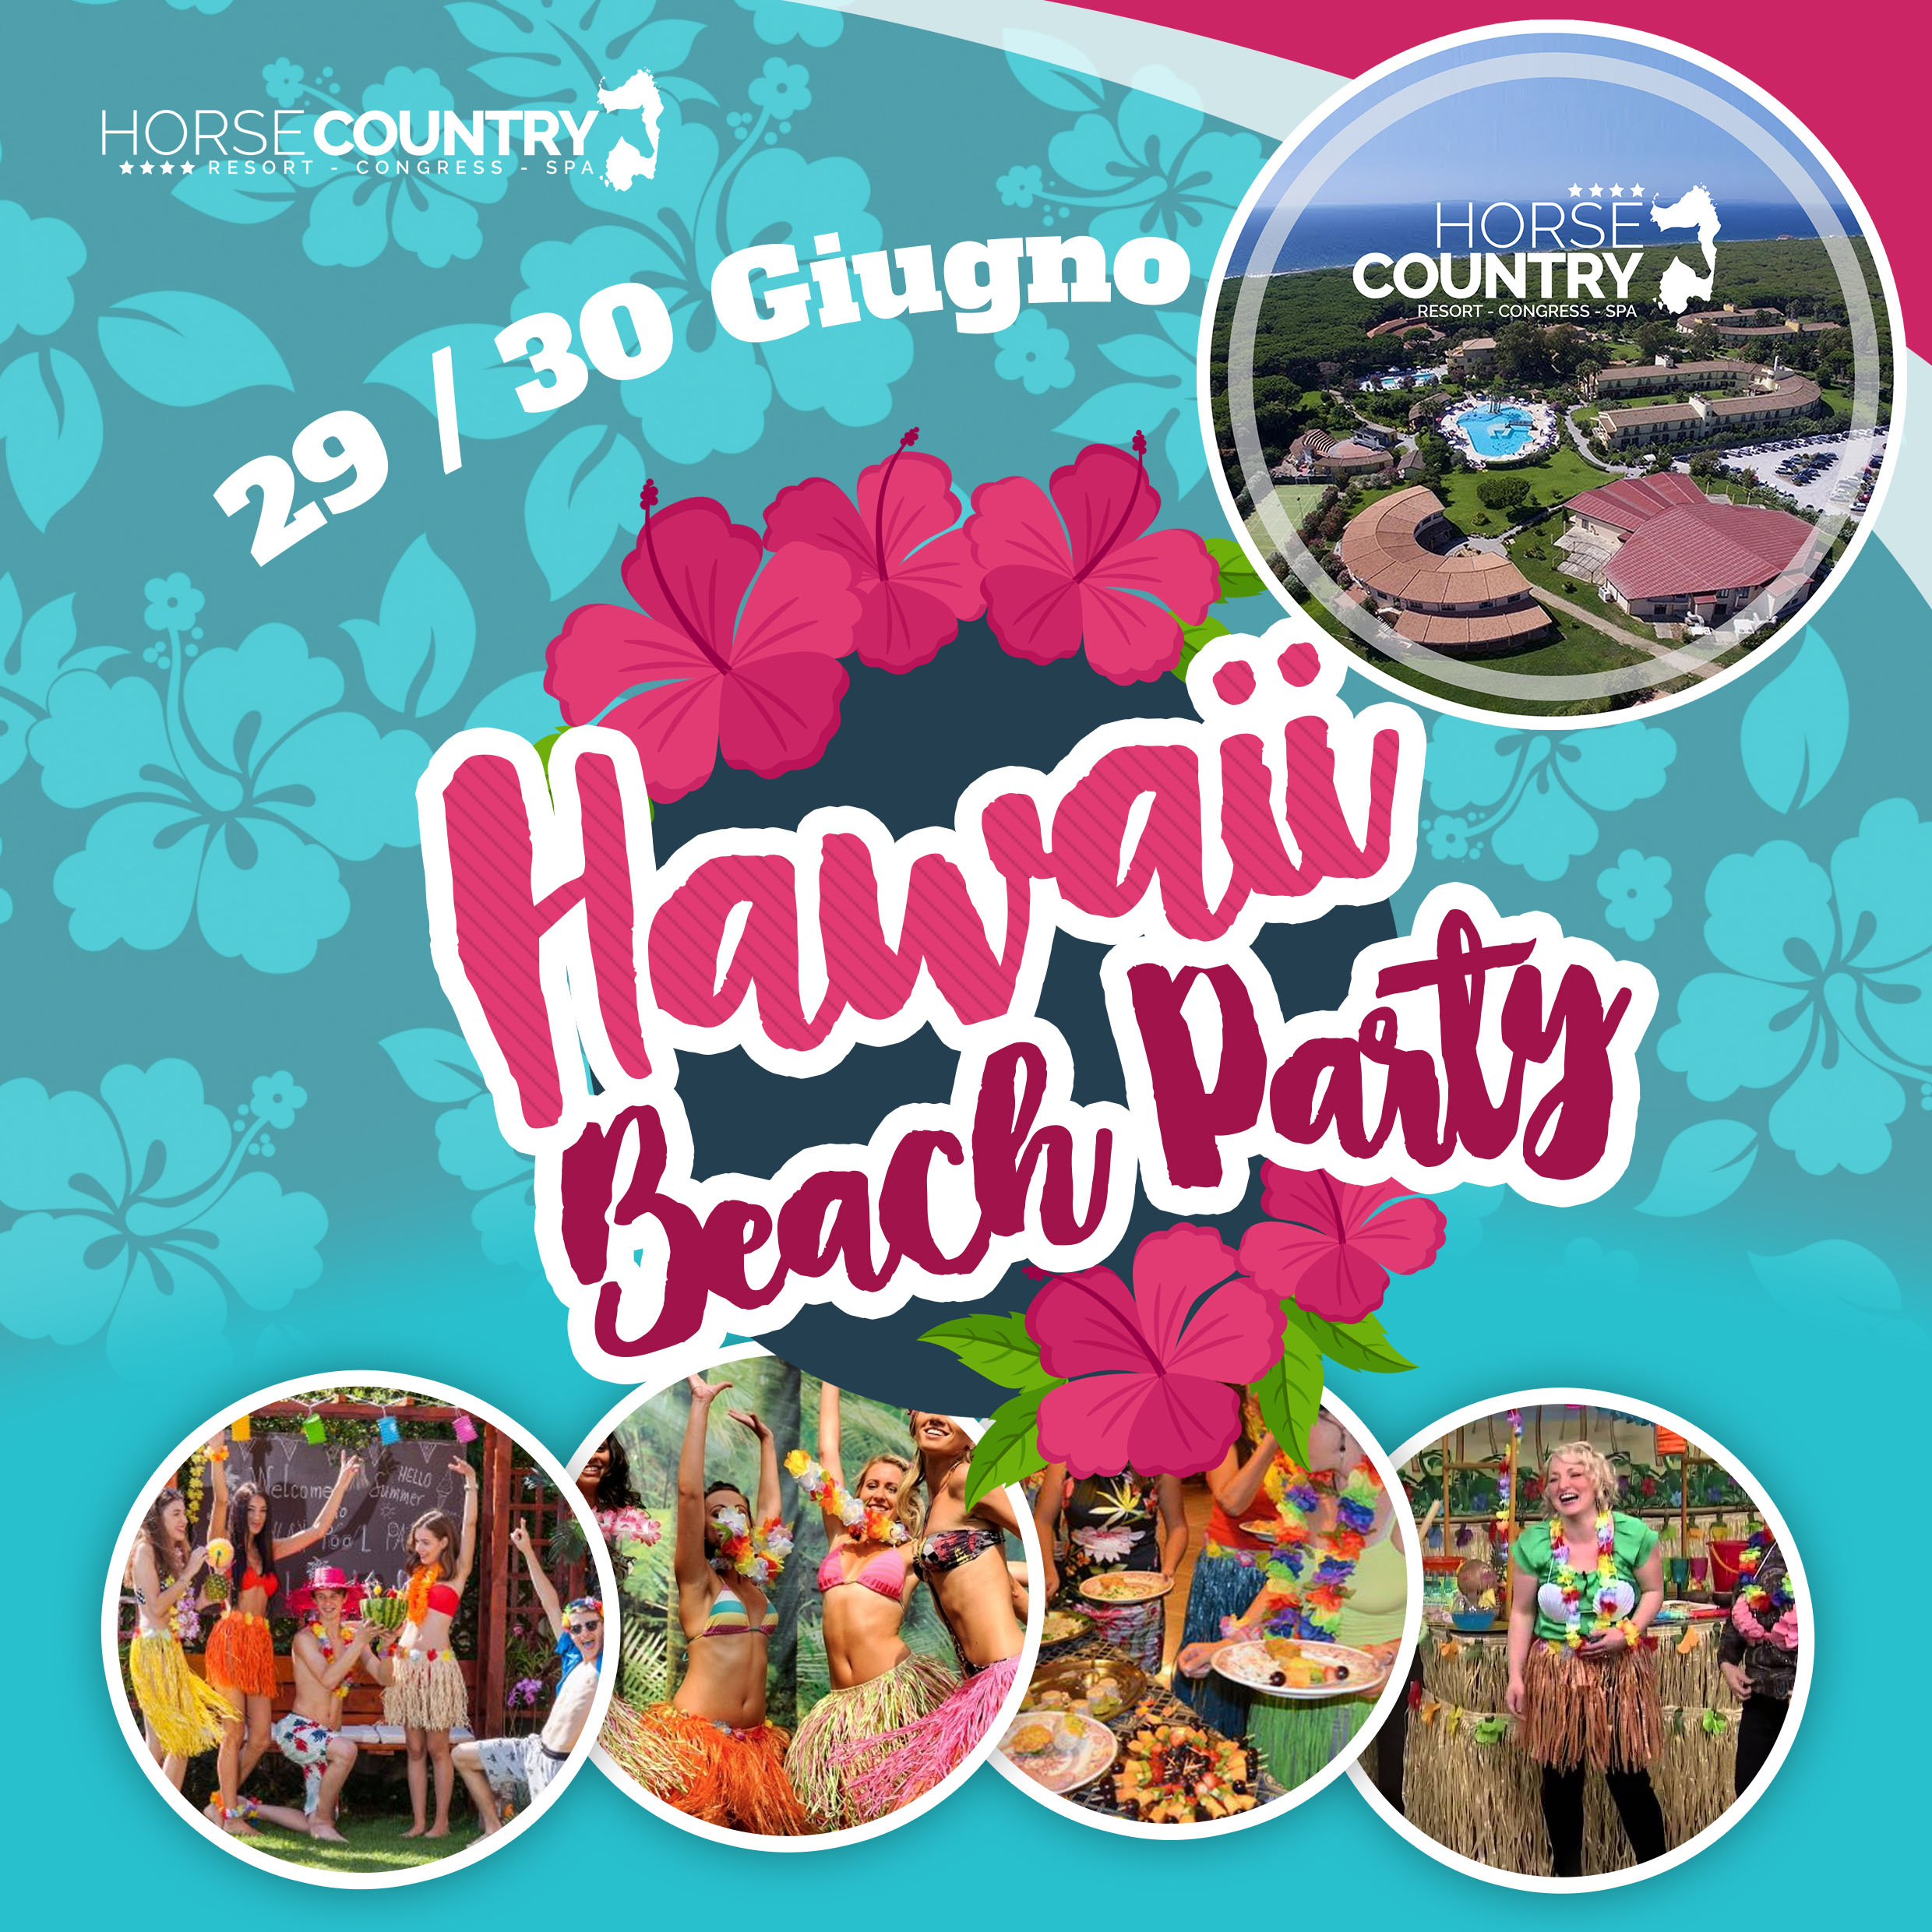 Hawaii Beach Party